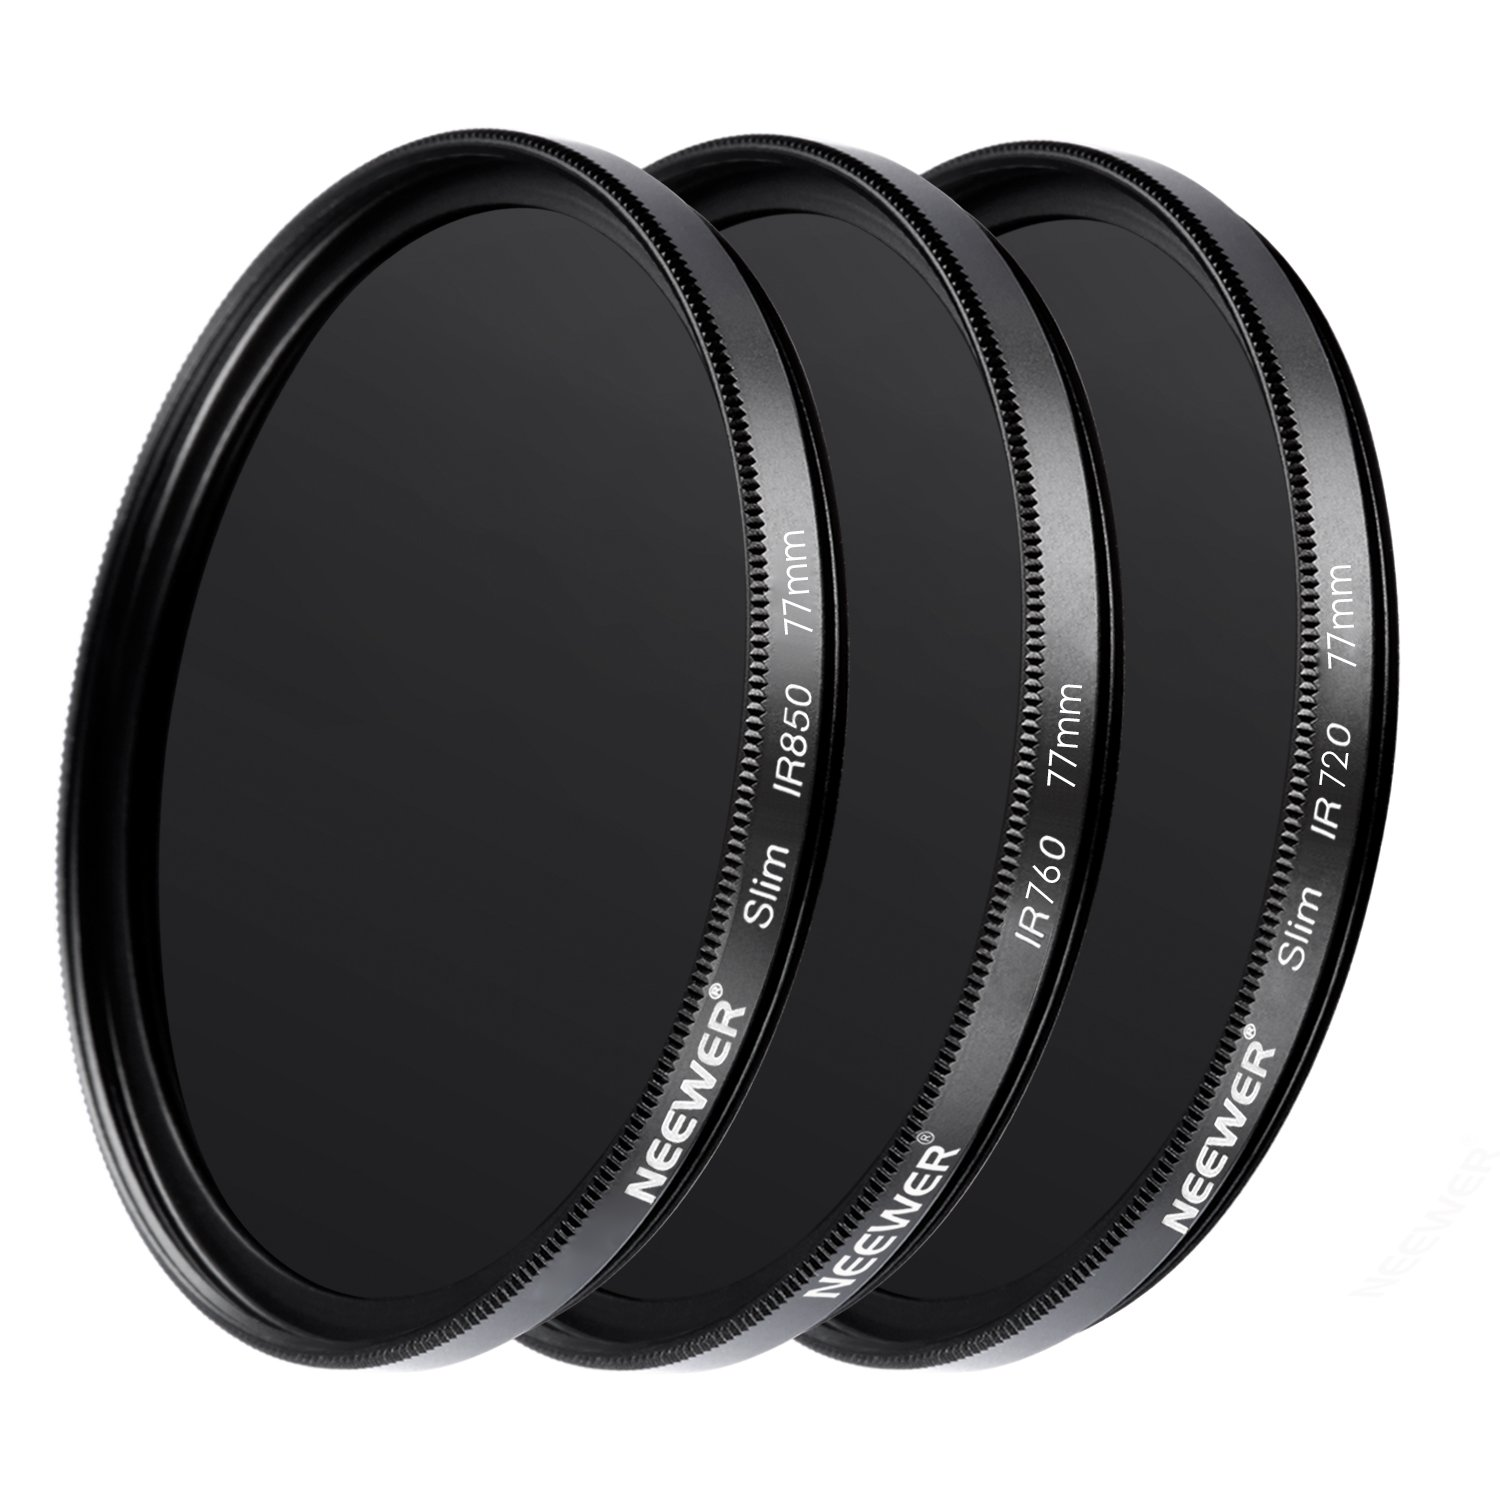 Neewer 55MM UV Lens Protection Filter for the Sony Alpha Series DSLR cameras with 18-55mm, 75-300mm f/4.5-5.6, 50mm f/1.4 lenses 10088883